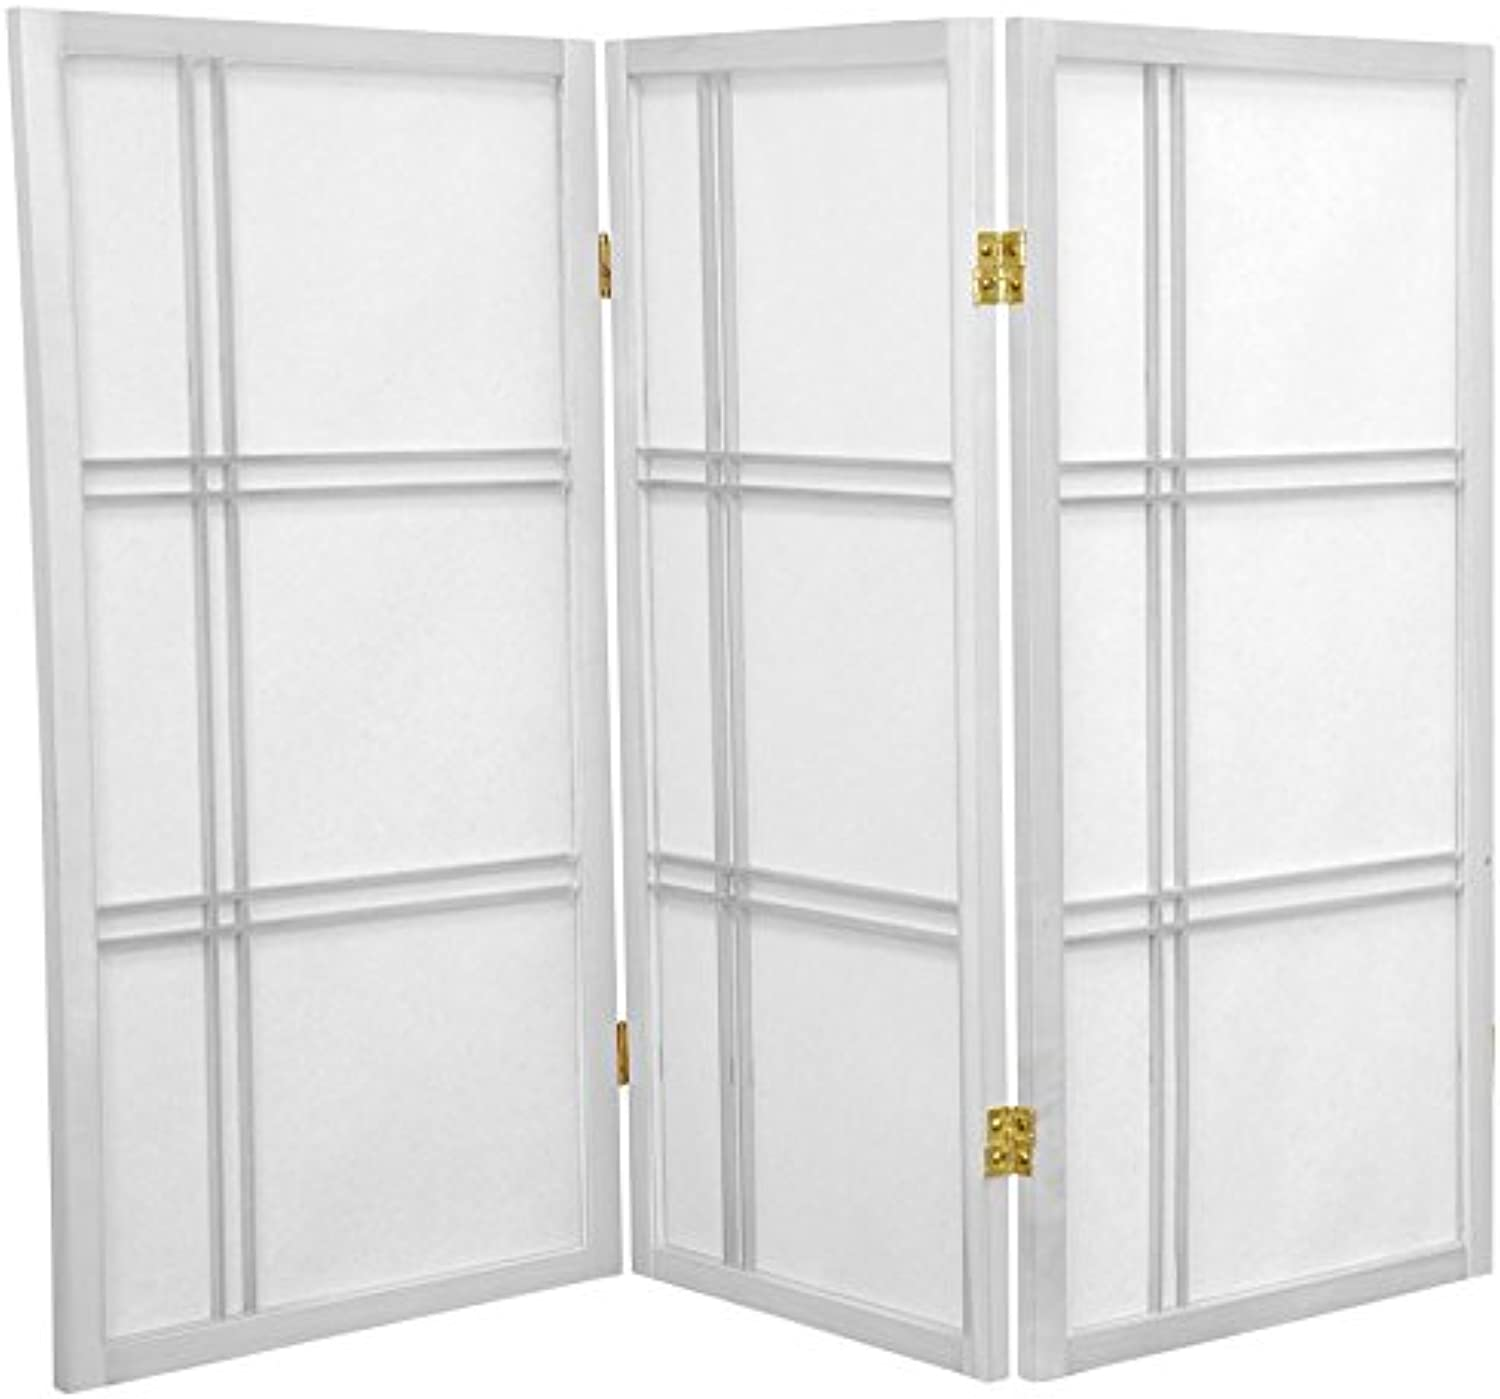 Oriental Furniture Half Size, 3-Feet Small Cross Hatch Japanese Privacy Screen Room Divider, 3 Panel White